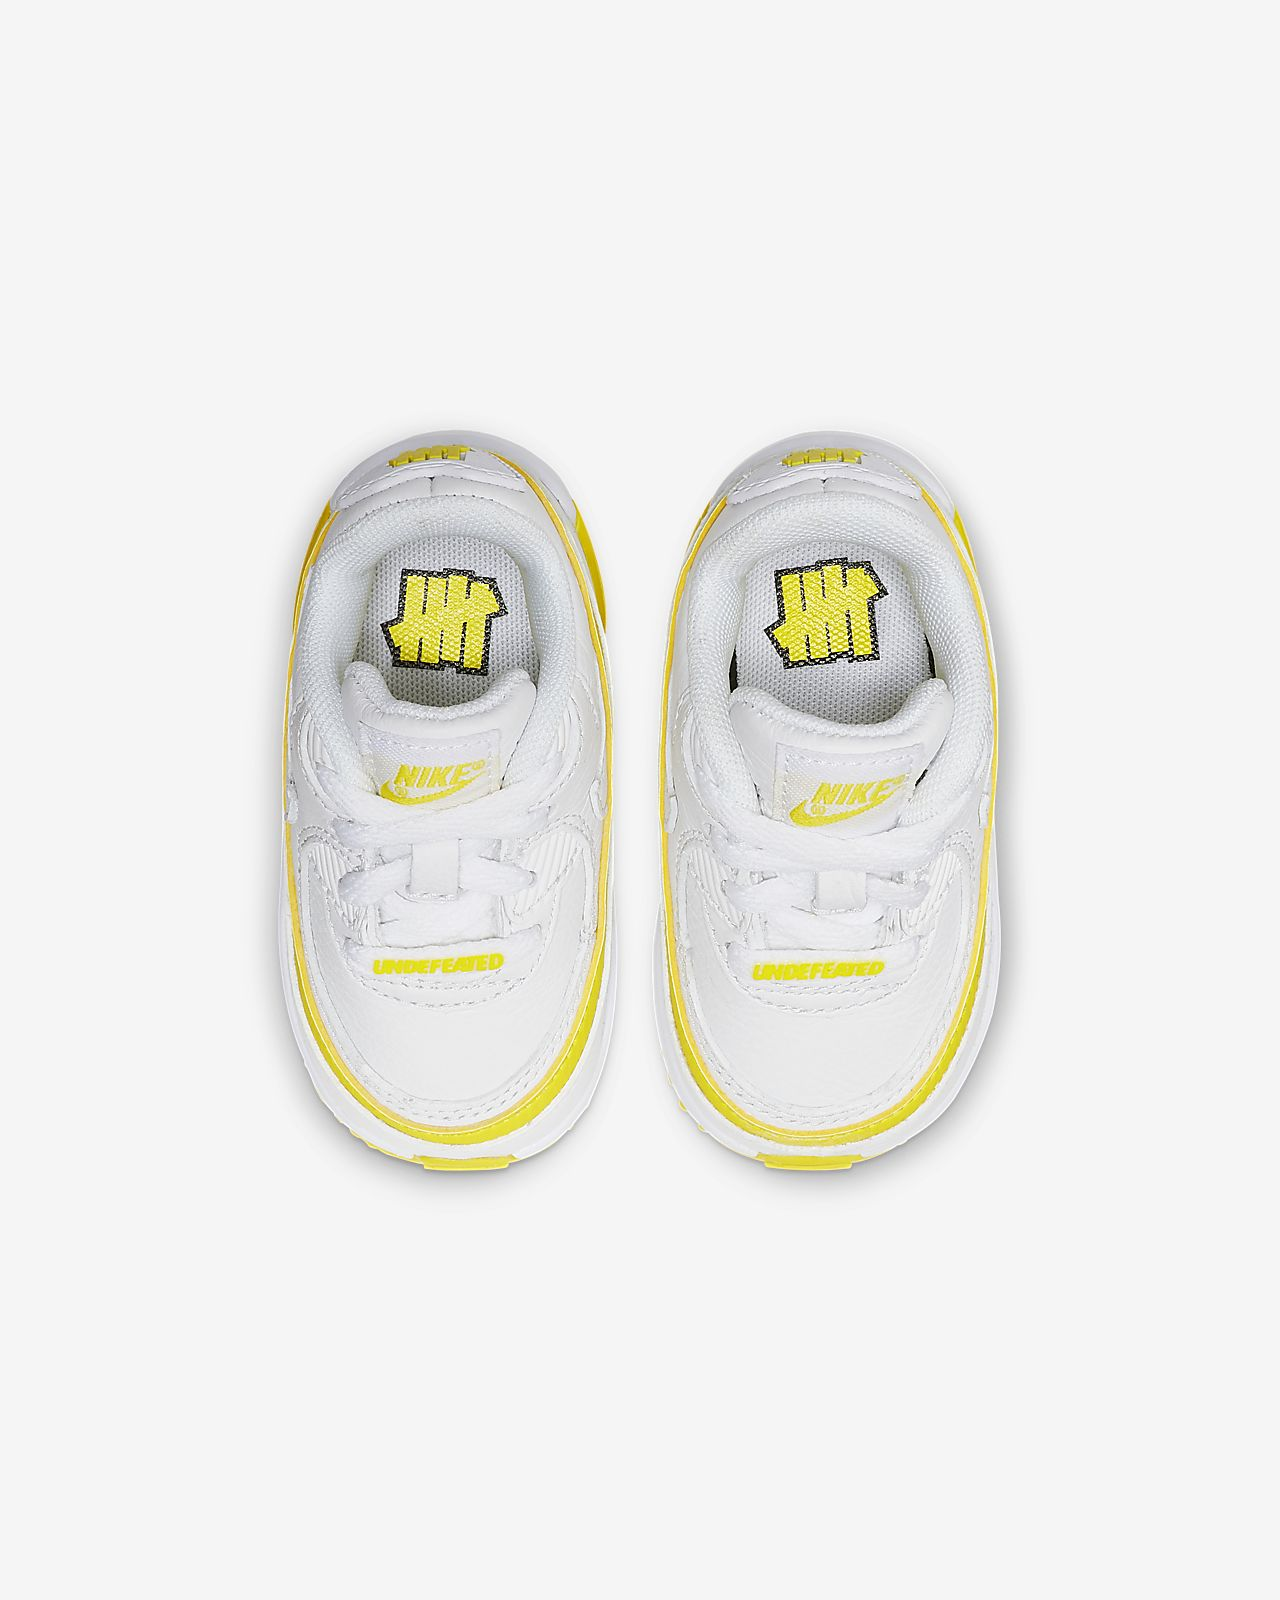 Nike x Undefeated Air Max 90 Baby and Toddler Shoe